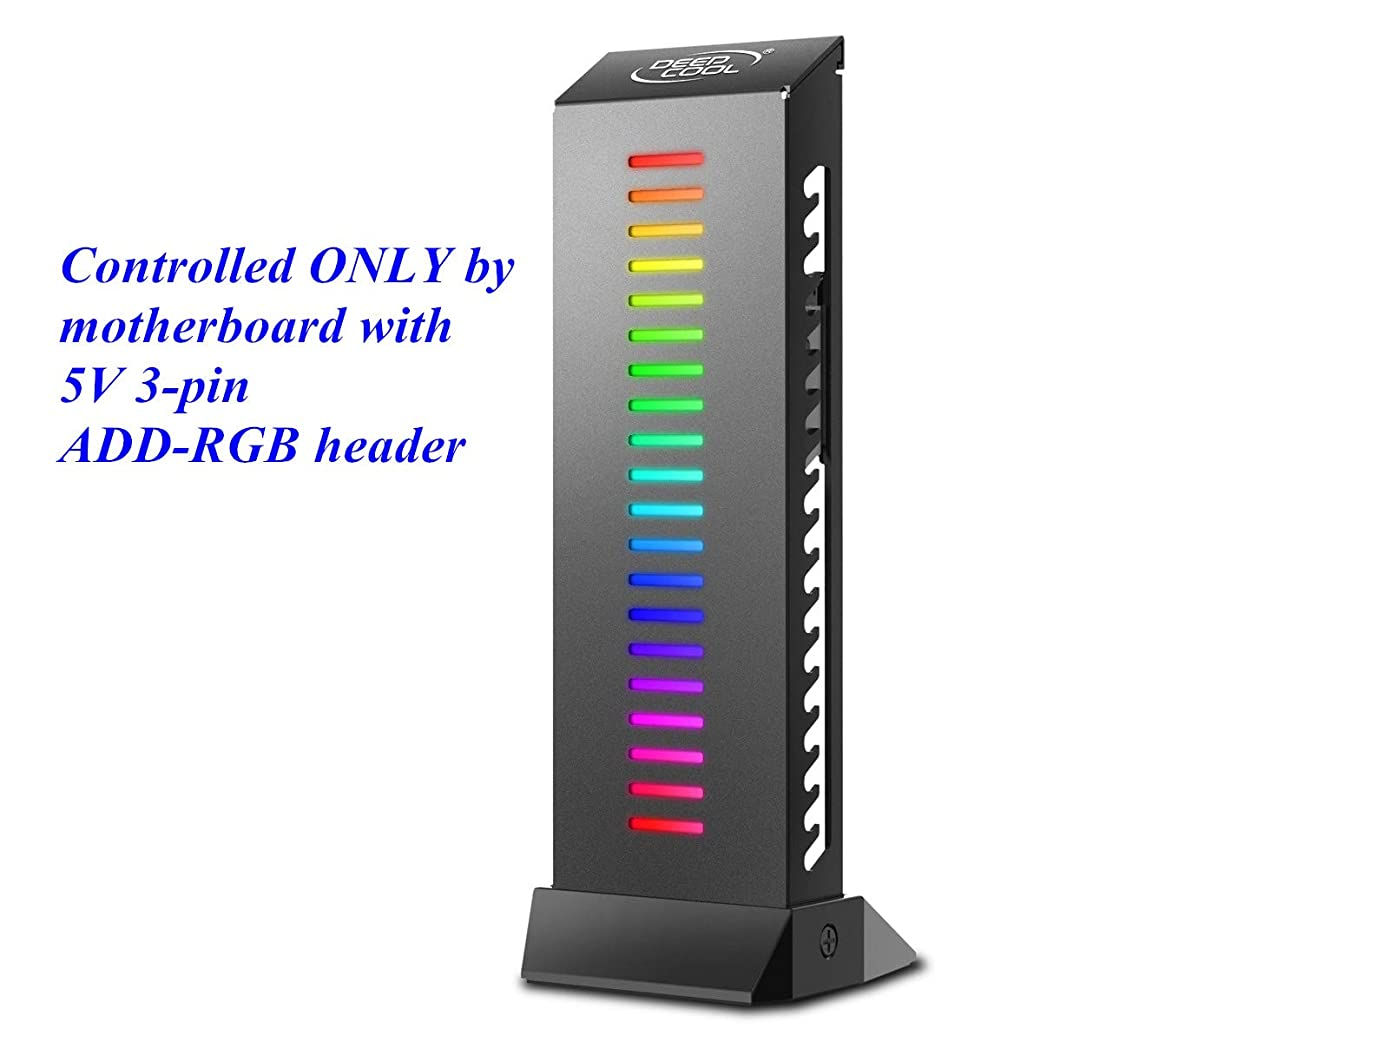 DEEPCOOL GH-01 A-RGB Graphics Card GPU Brace Support Holder, Addressable RGB, ONLY Controlled by Motherboard with 5V 3-pin ADD-RGB Header, Support up to 5Kg Graphics Card, Wire Hiding